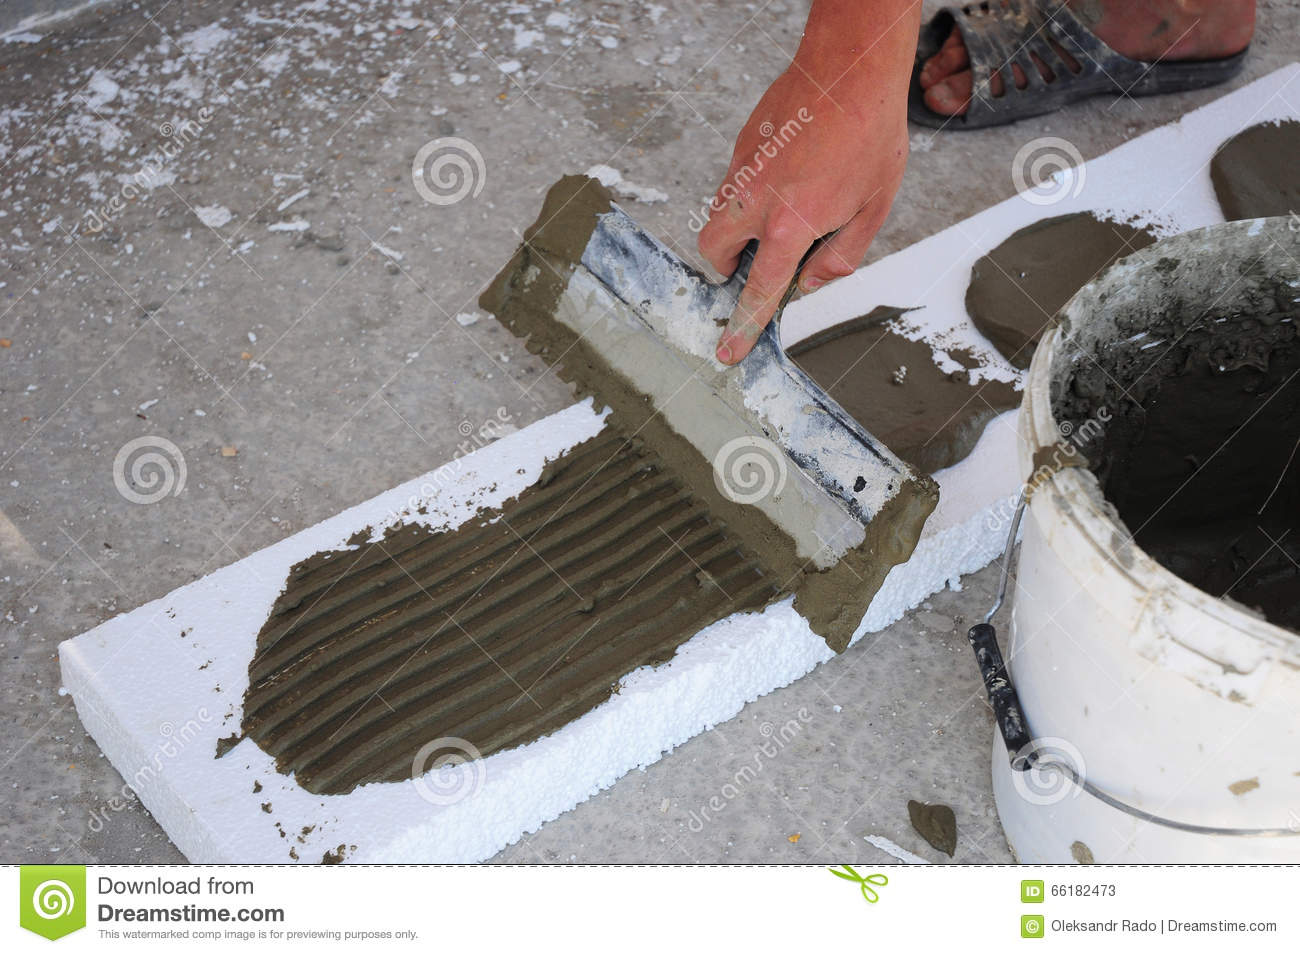 Download Manu0027s Hand Plastering A Wall Styrofoam Or Foam Board Insulation With Trowel. Styrofoam Insulation & Manu0027s Hand Plastering A Wall Styrofoam Or Foam Board Insulation With ...